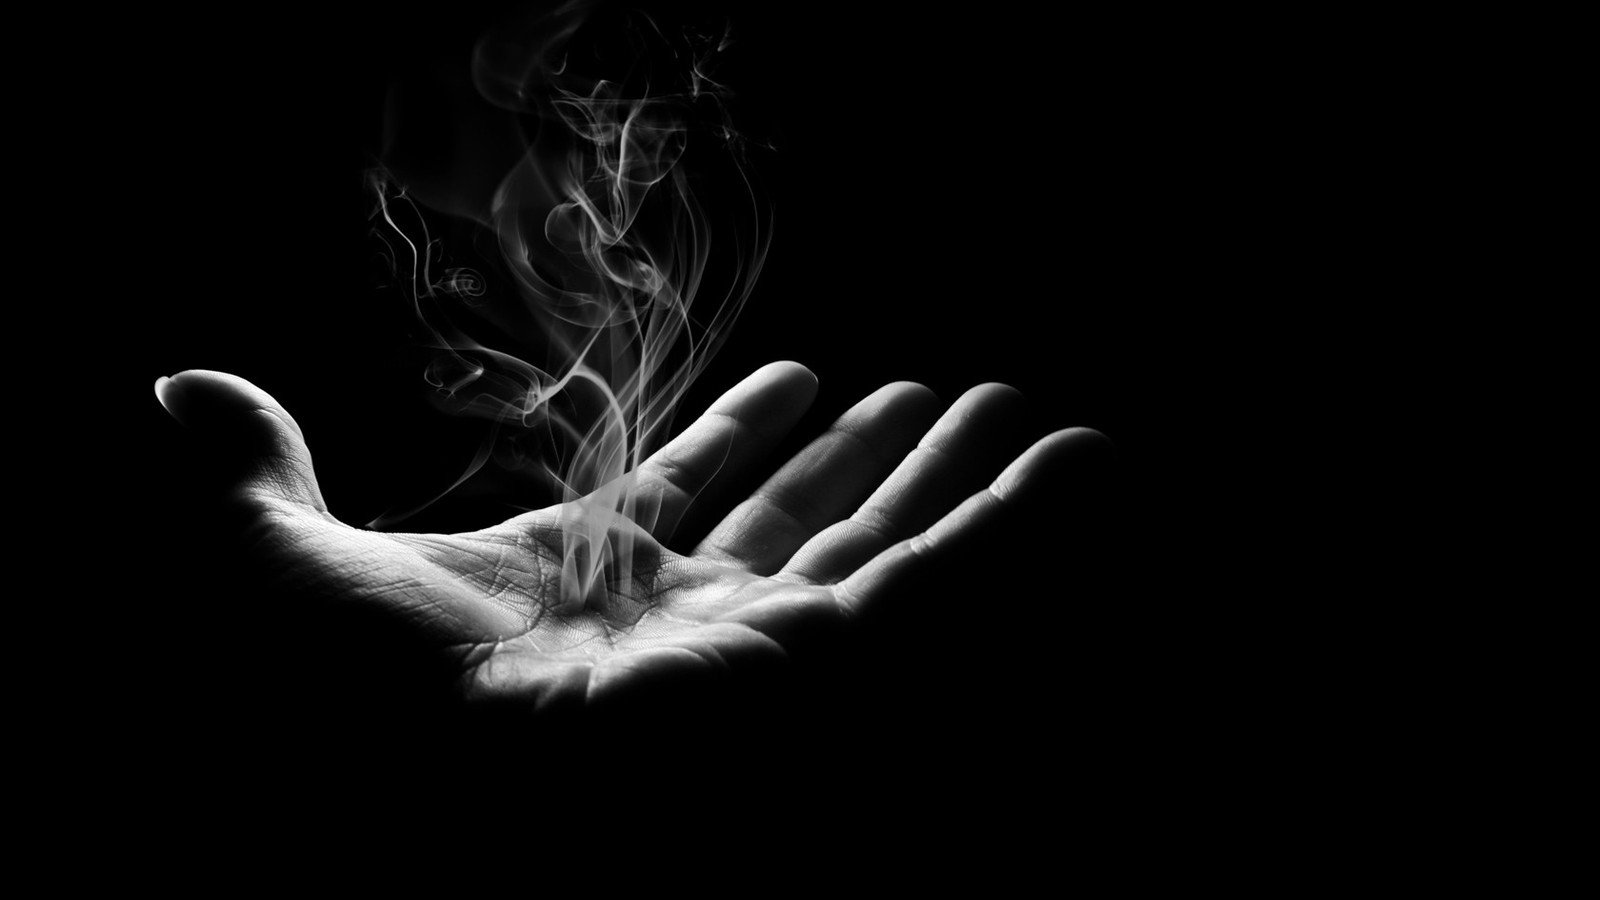 400 Smoke HD Wallpapers